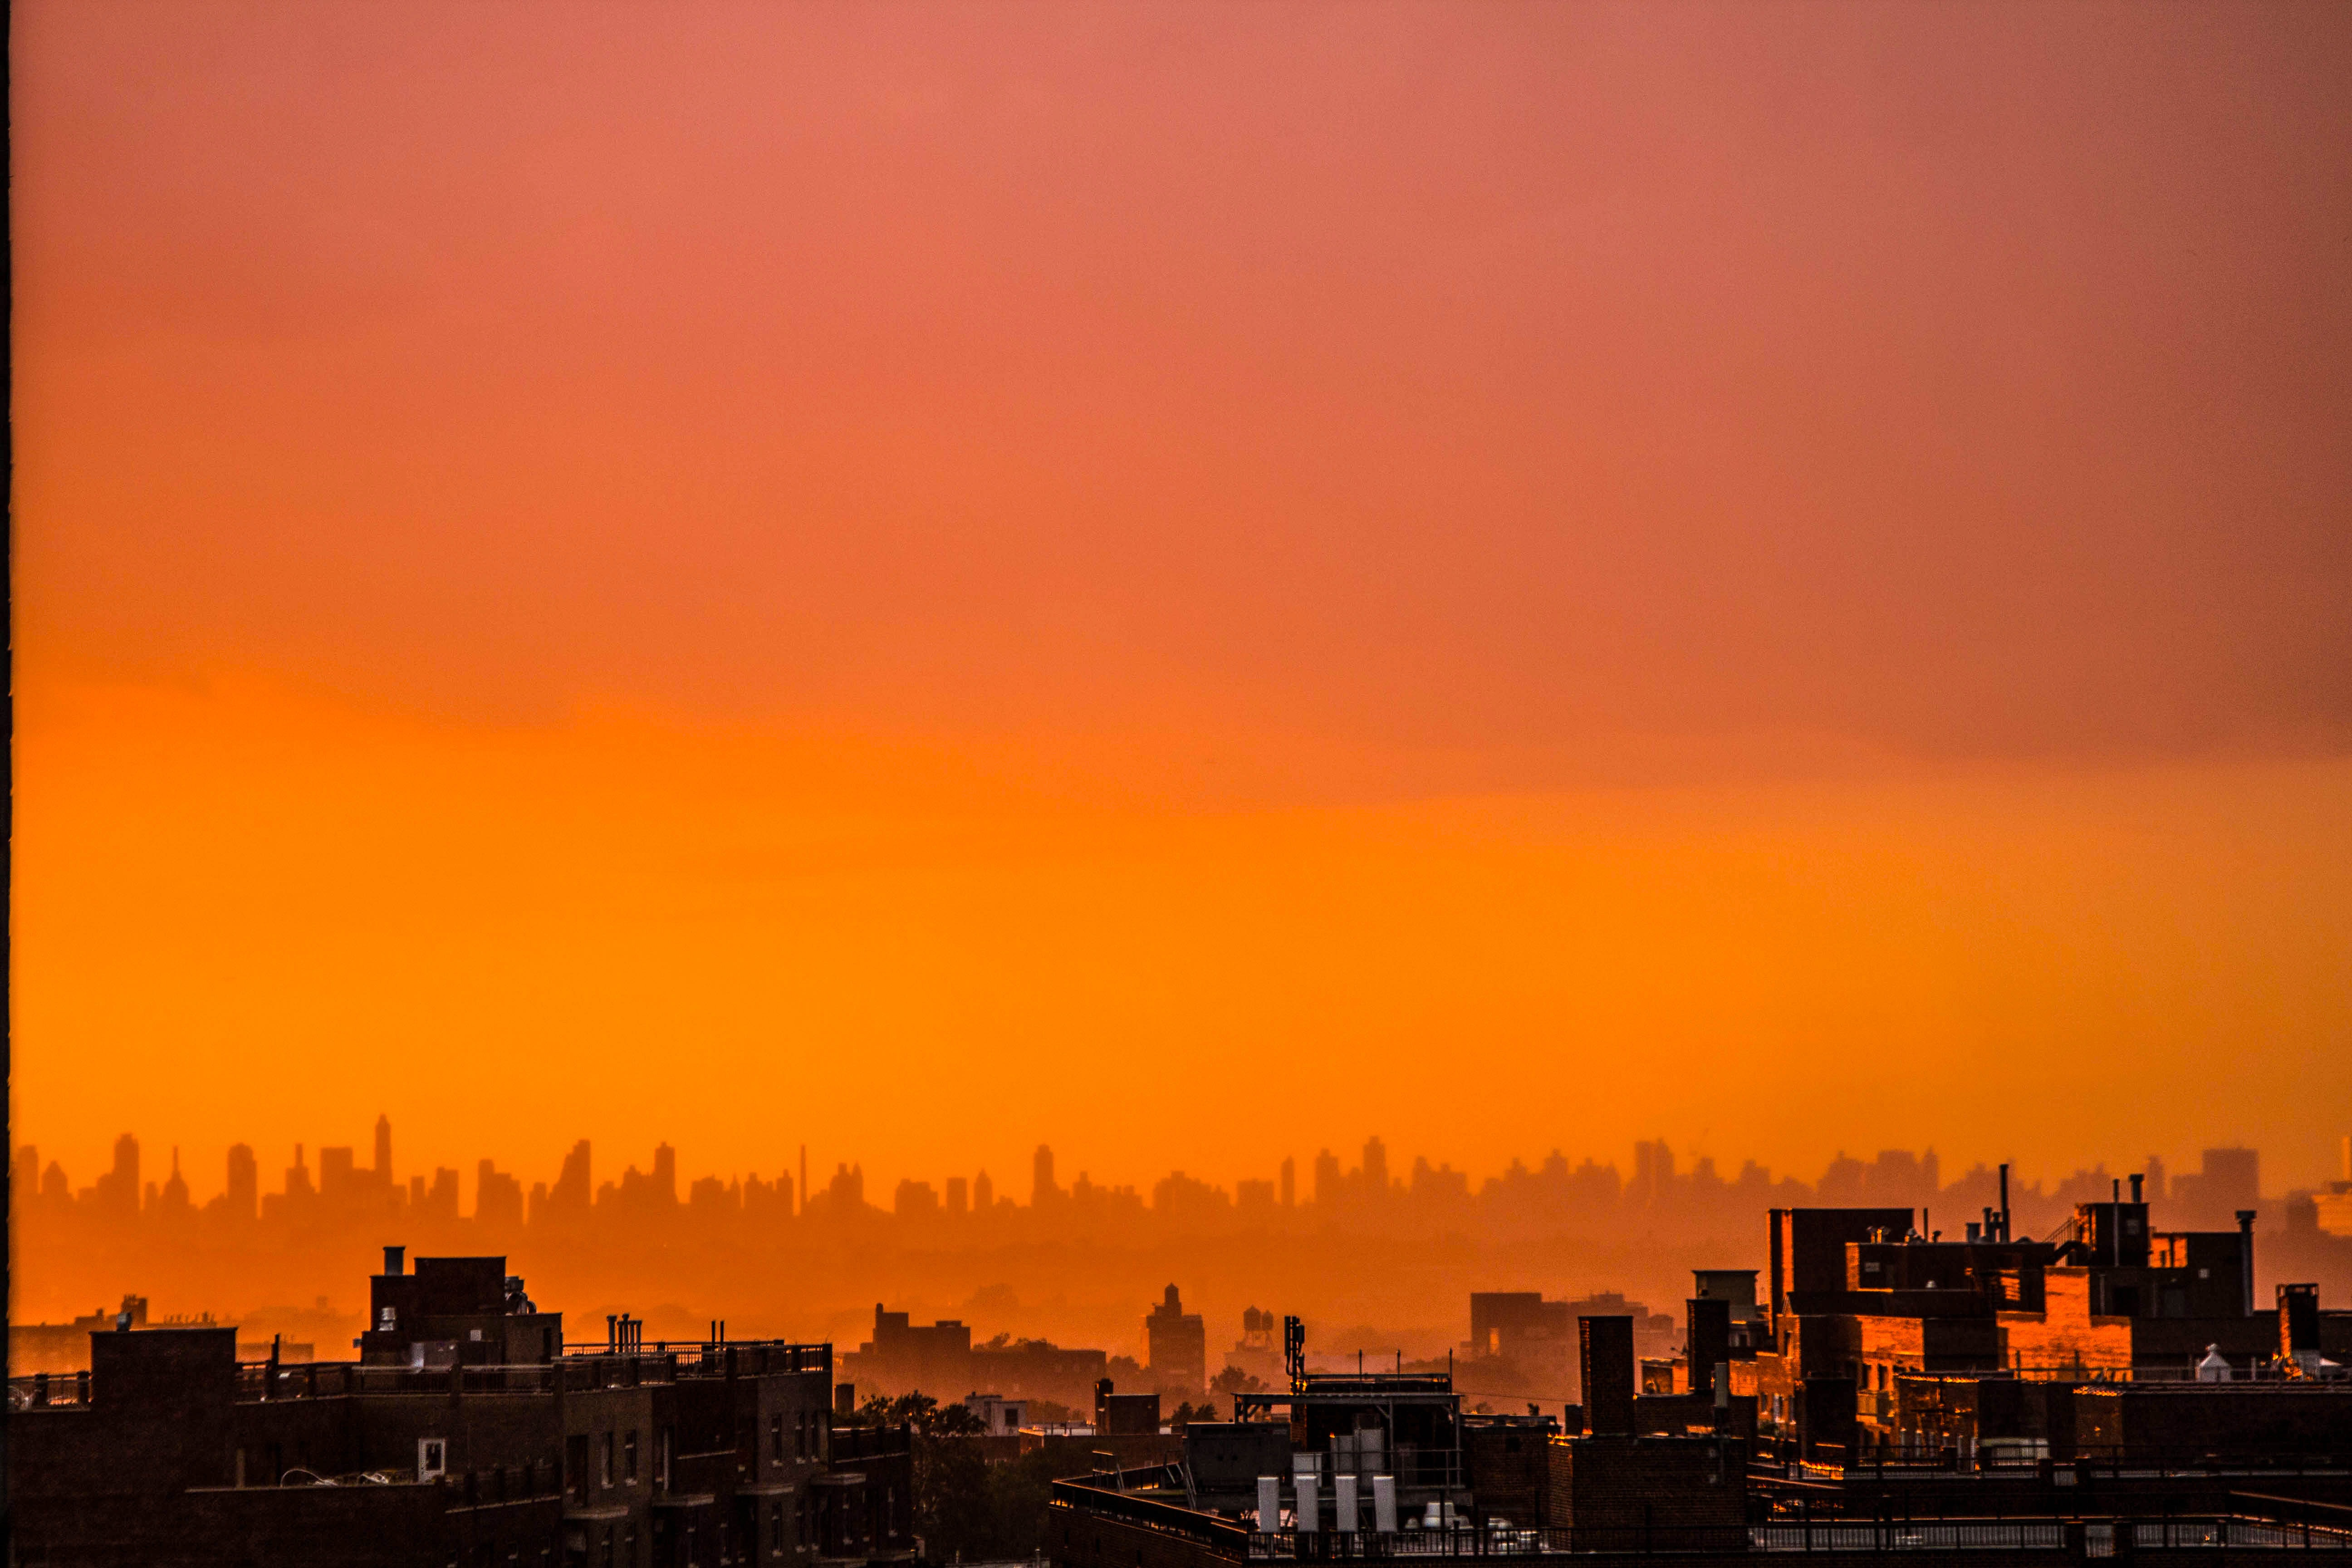 Photography of City During Sunset, Architecture, Sunset, Skyline, Sky, HQ Photo